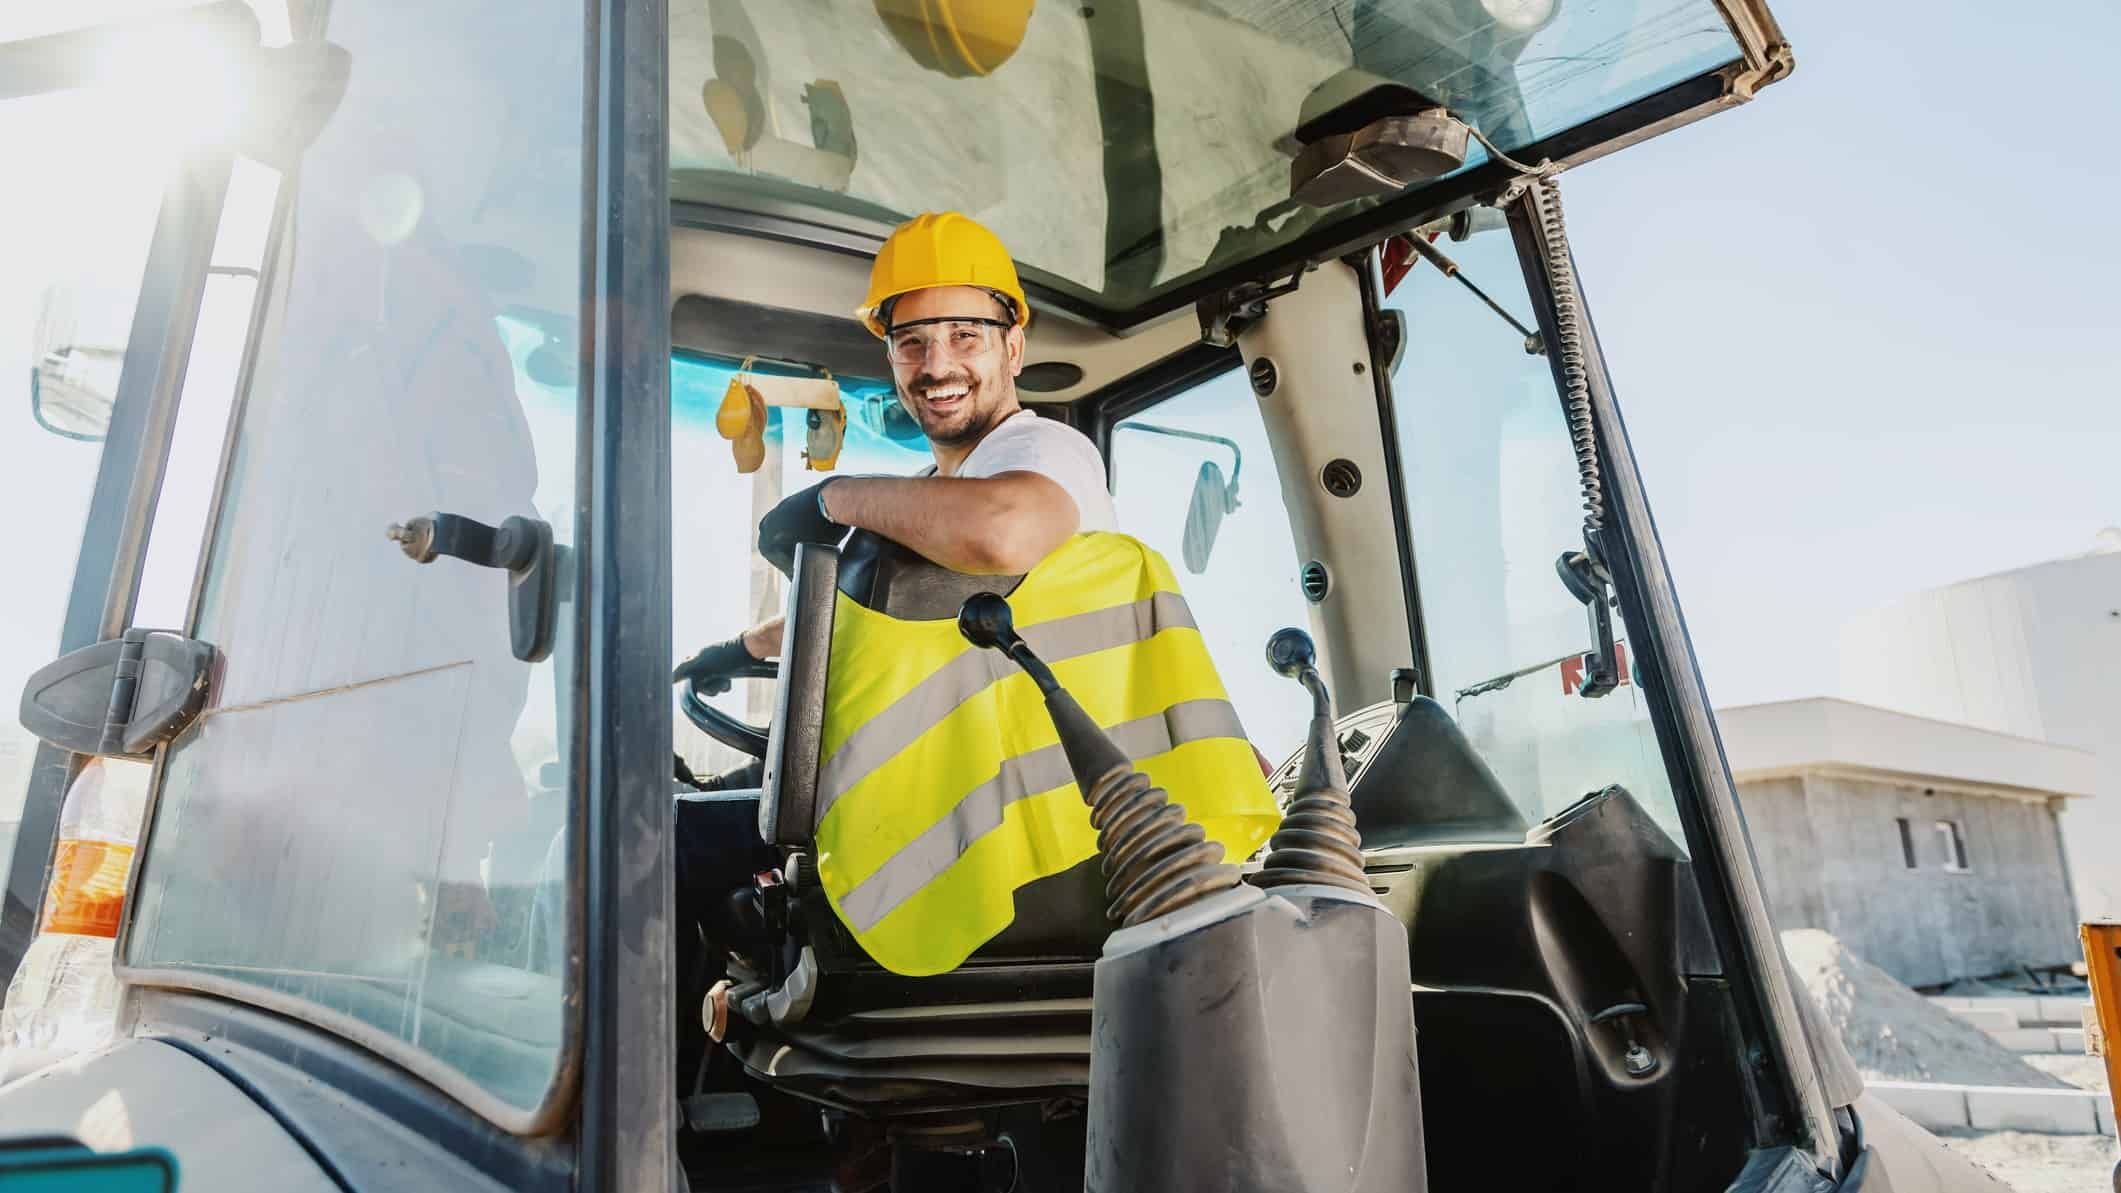 male wearing high vis vest smiling while sitting in excavator cabin